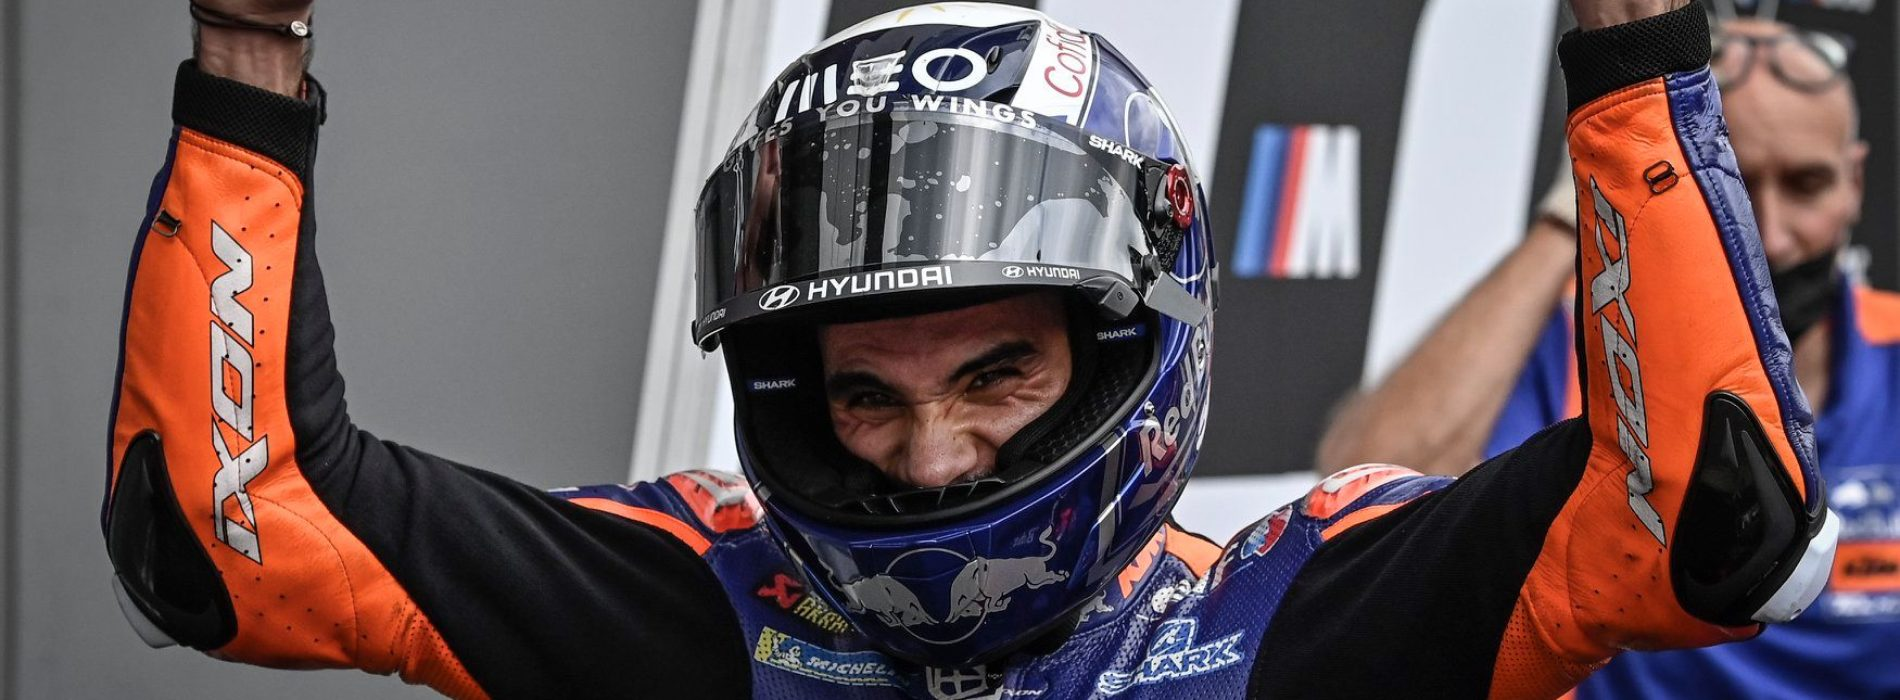 KTM rise in MotoGP means loss of concessions- what does that mean in broader perspective?